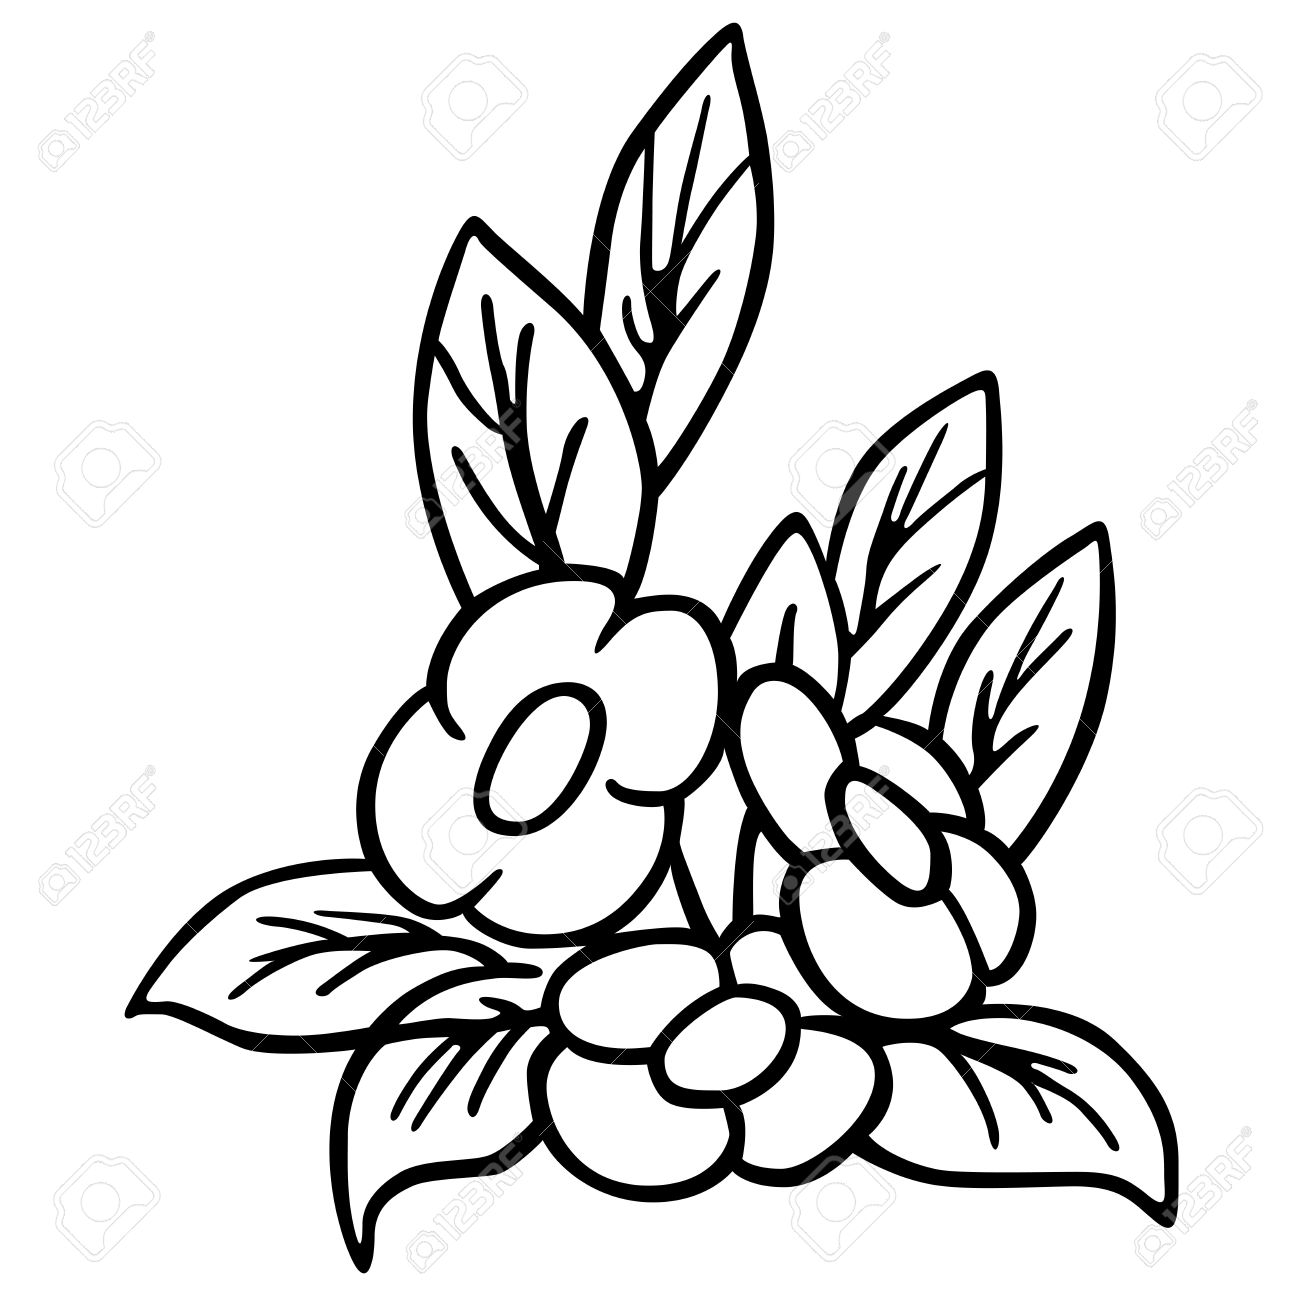 1300x1300 Flower Black And White Cartoon Wallpapers Gallery